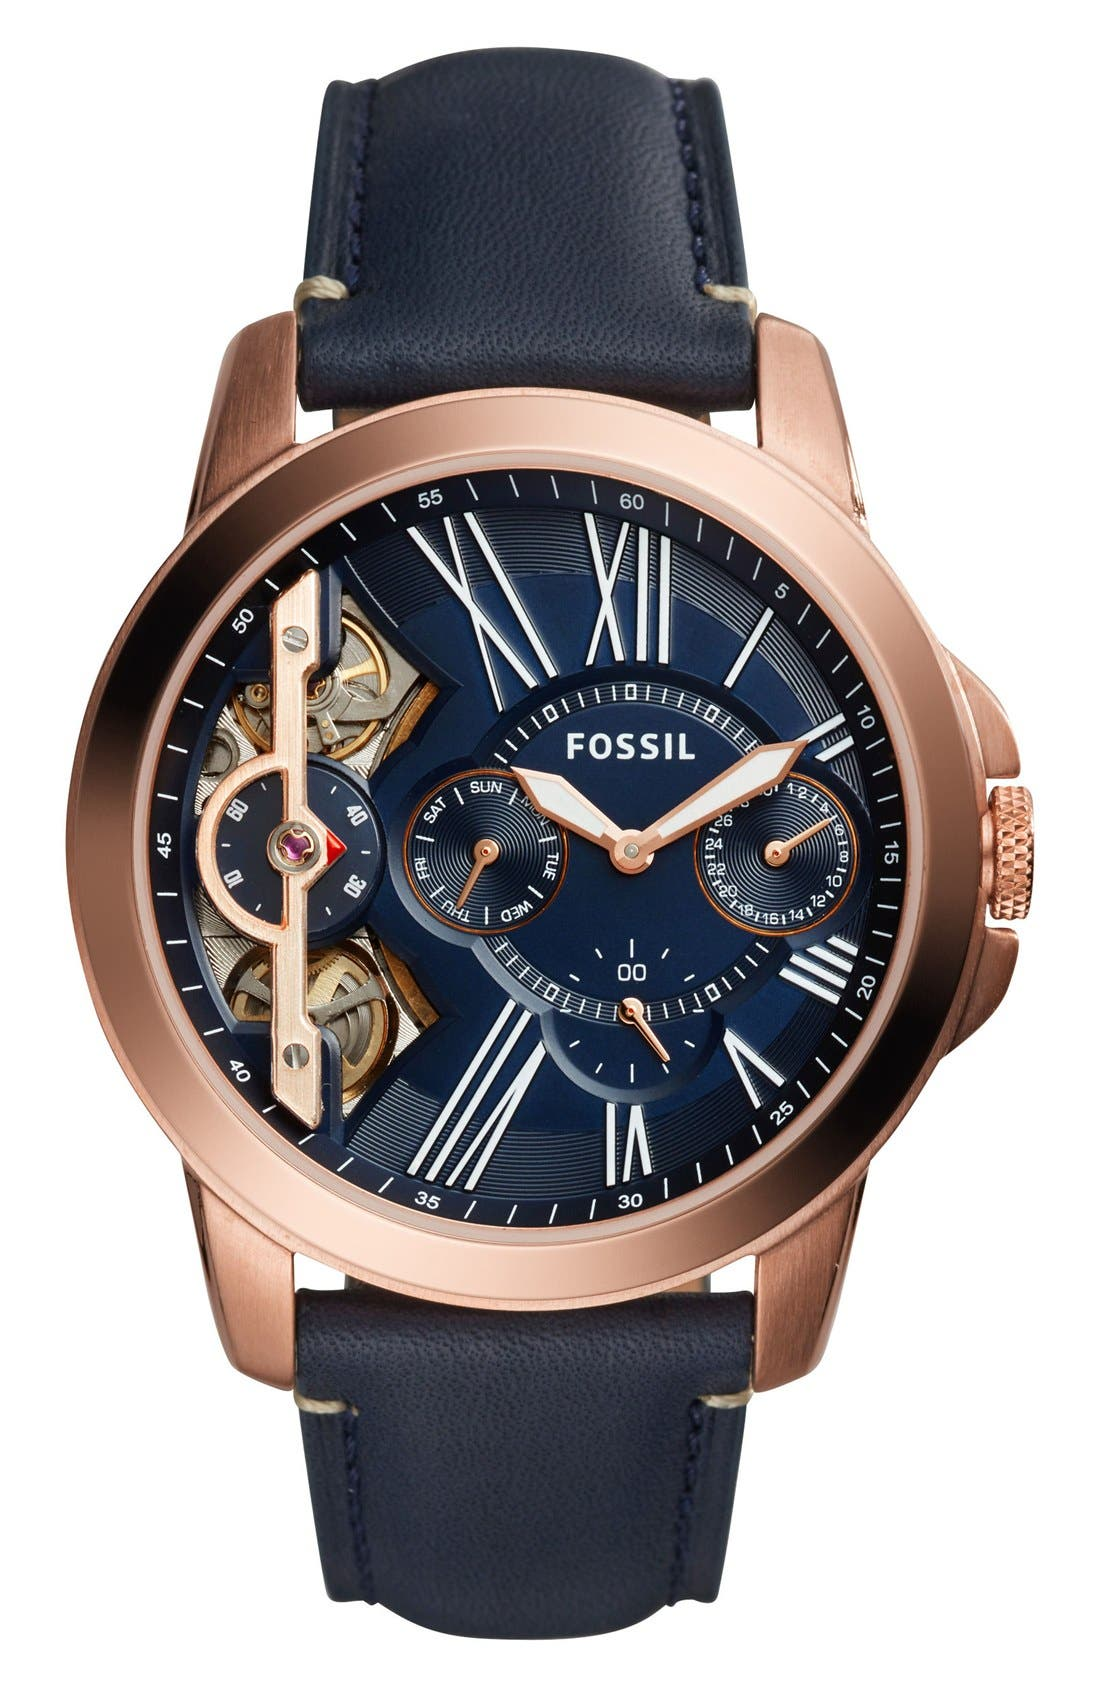 FOSSIL 'Grant' Chronograph Leather Strap Watch, 44mm, Main, color, NAVY/ ROSE GOLD